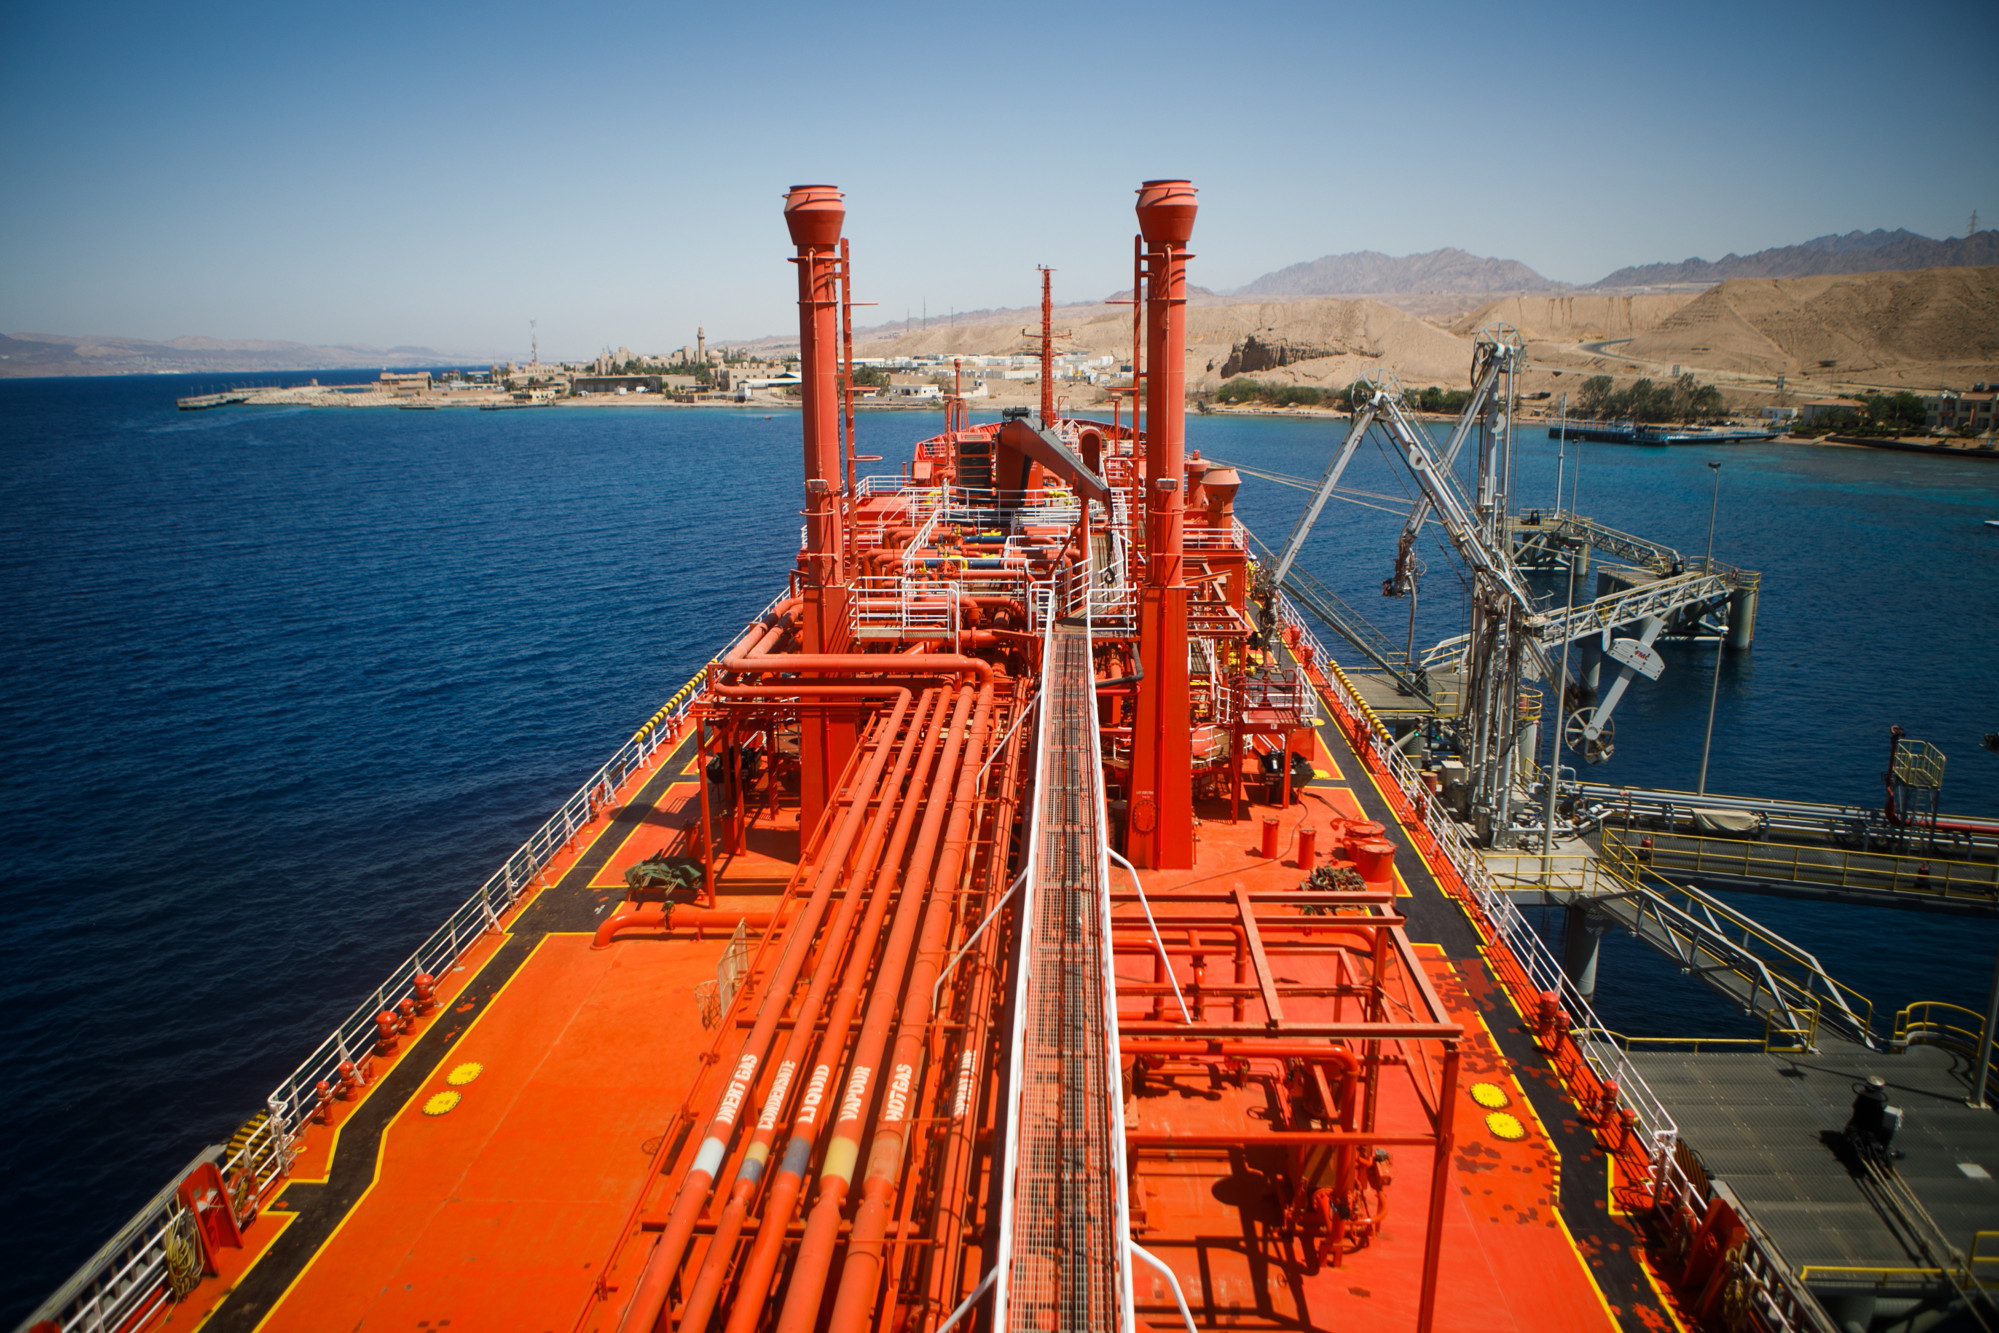 The 'Eugenia Gas' liquefied petroleum gas (LPG) tanker sits beside fuel transfer pipes at a terminal at Aqaba port, operated by Aqaba Development Corp., in Aqaba, Jordan, on Wednesday, April 11, 2018. Both the liquefied natural gas (LNG) and the LPG terminals were developed to secure the supply of gas resources after the disruption in Egyptian natural gas imports in 2010. Photographer: Annie Sakkab/Bloomberg